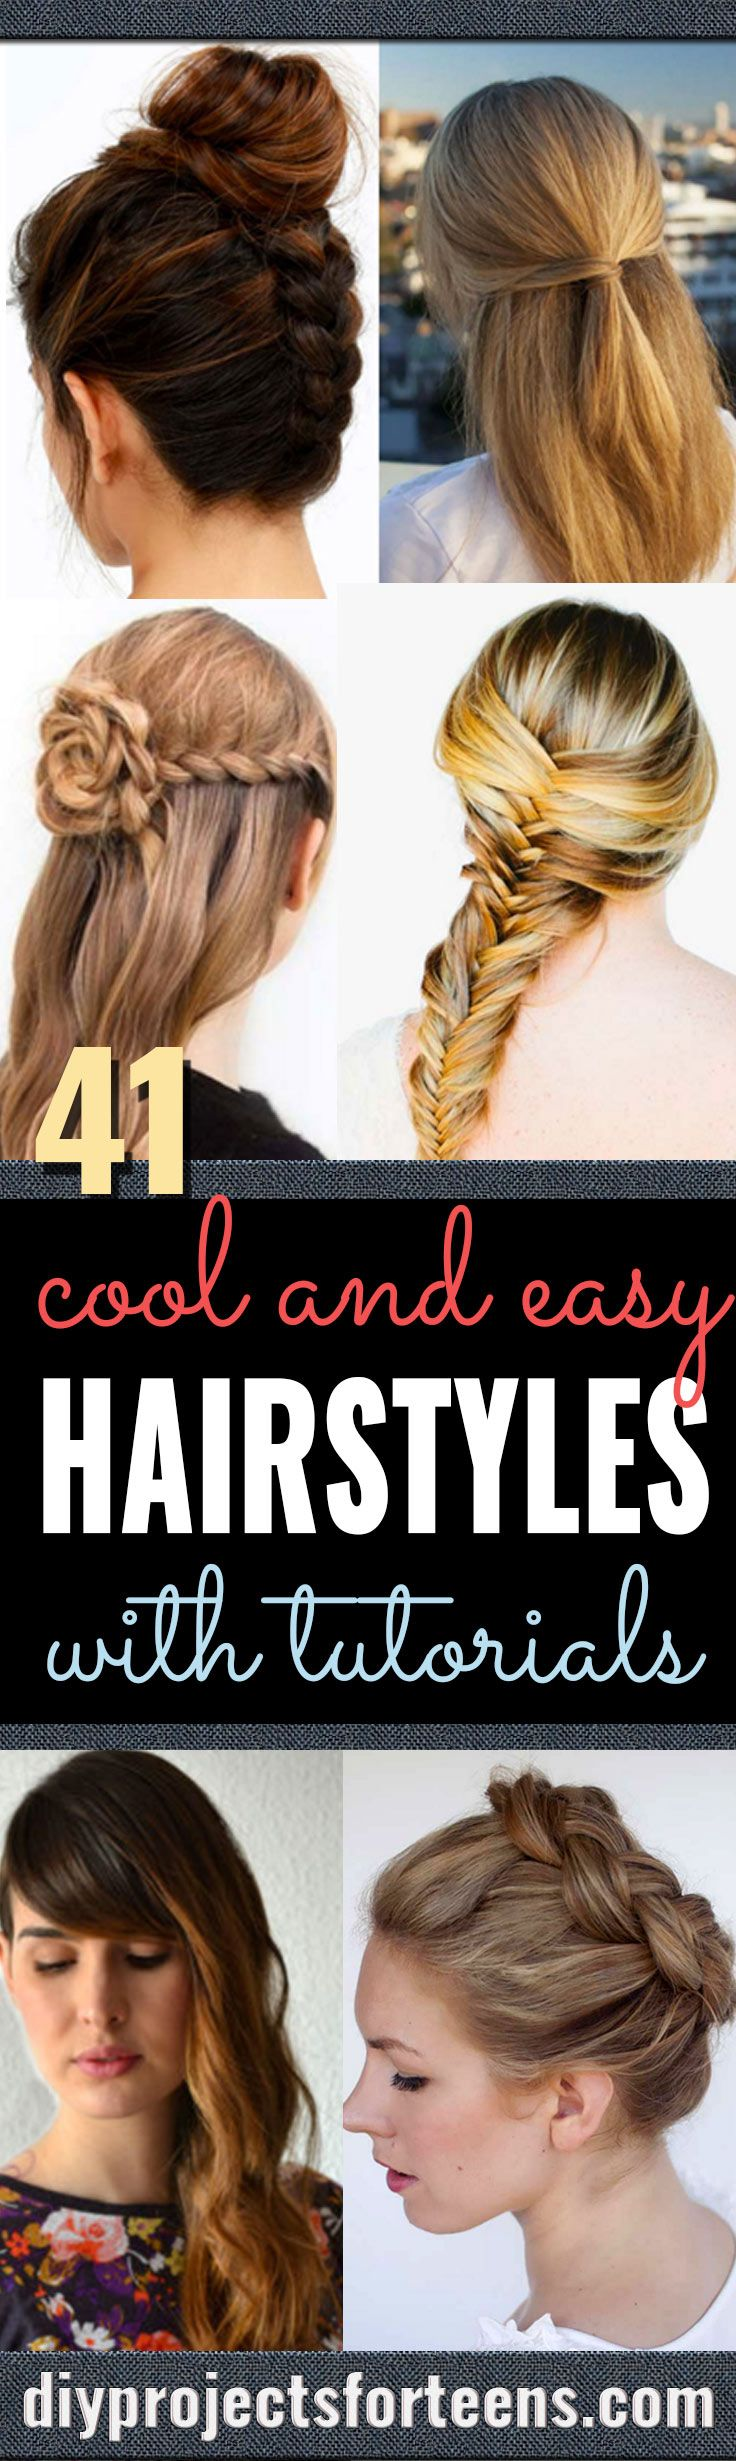 Cool and Easy DIY Hairstyles - Quick and Easy Ideas for Back to School Styles fo...